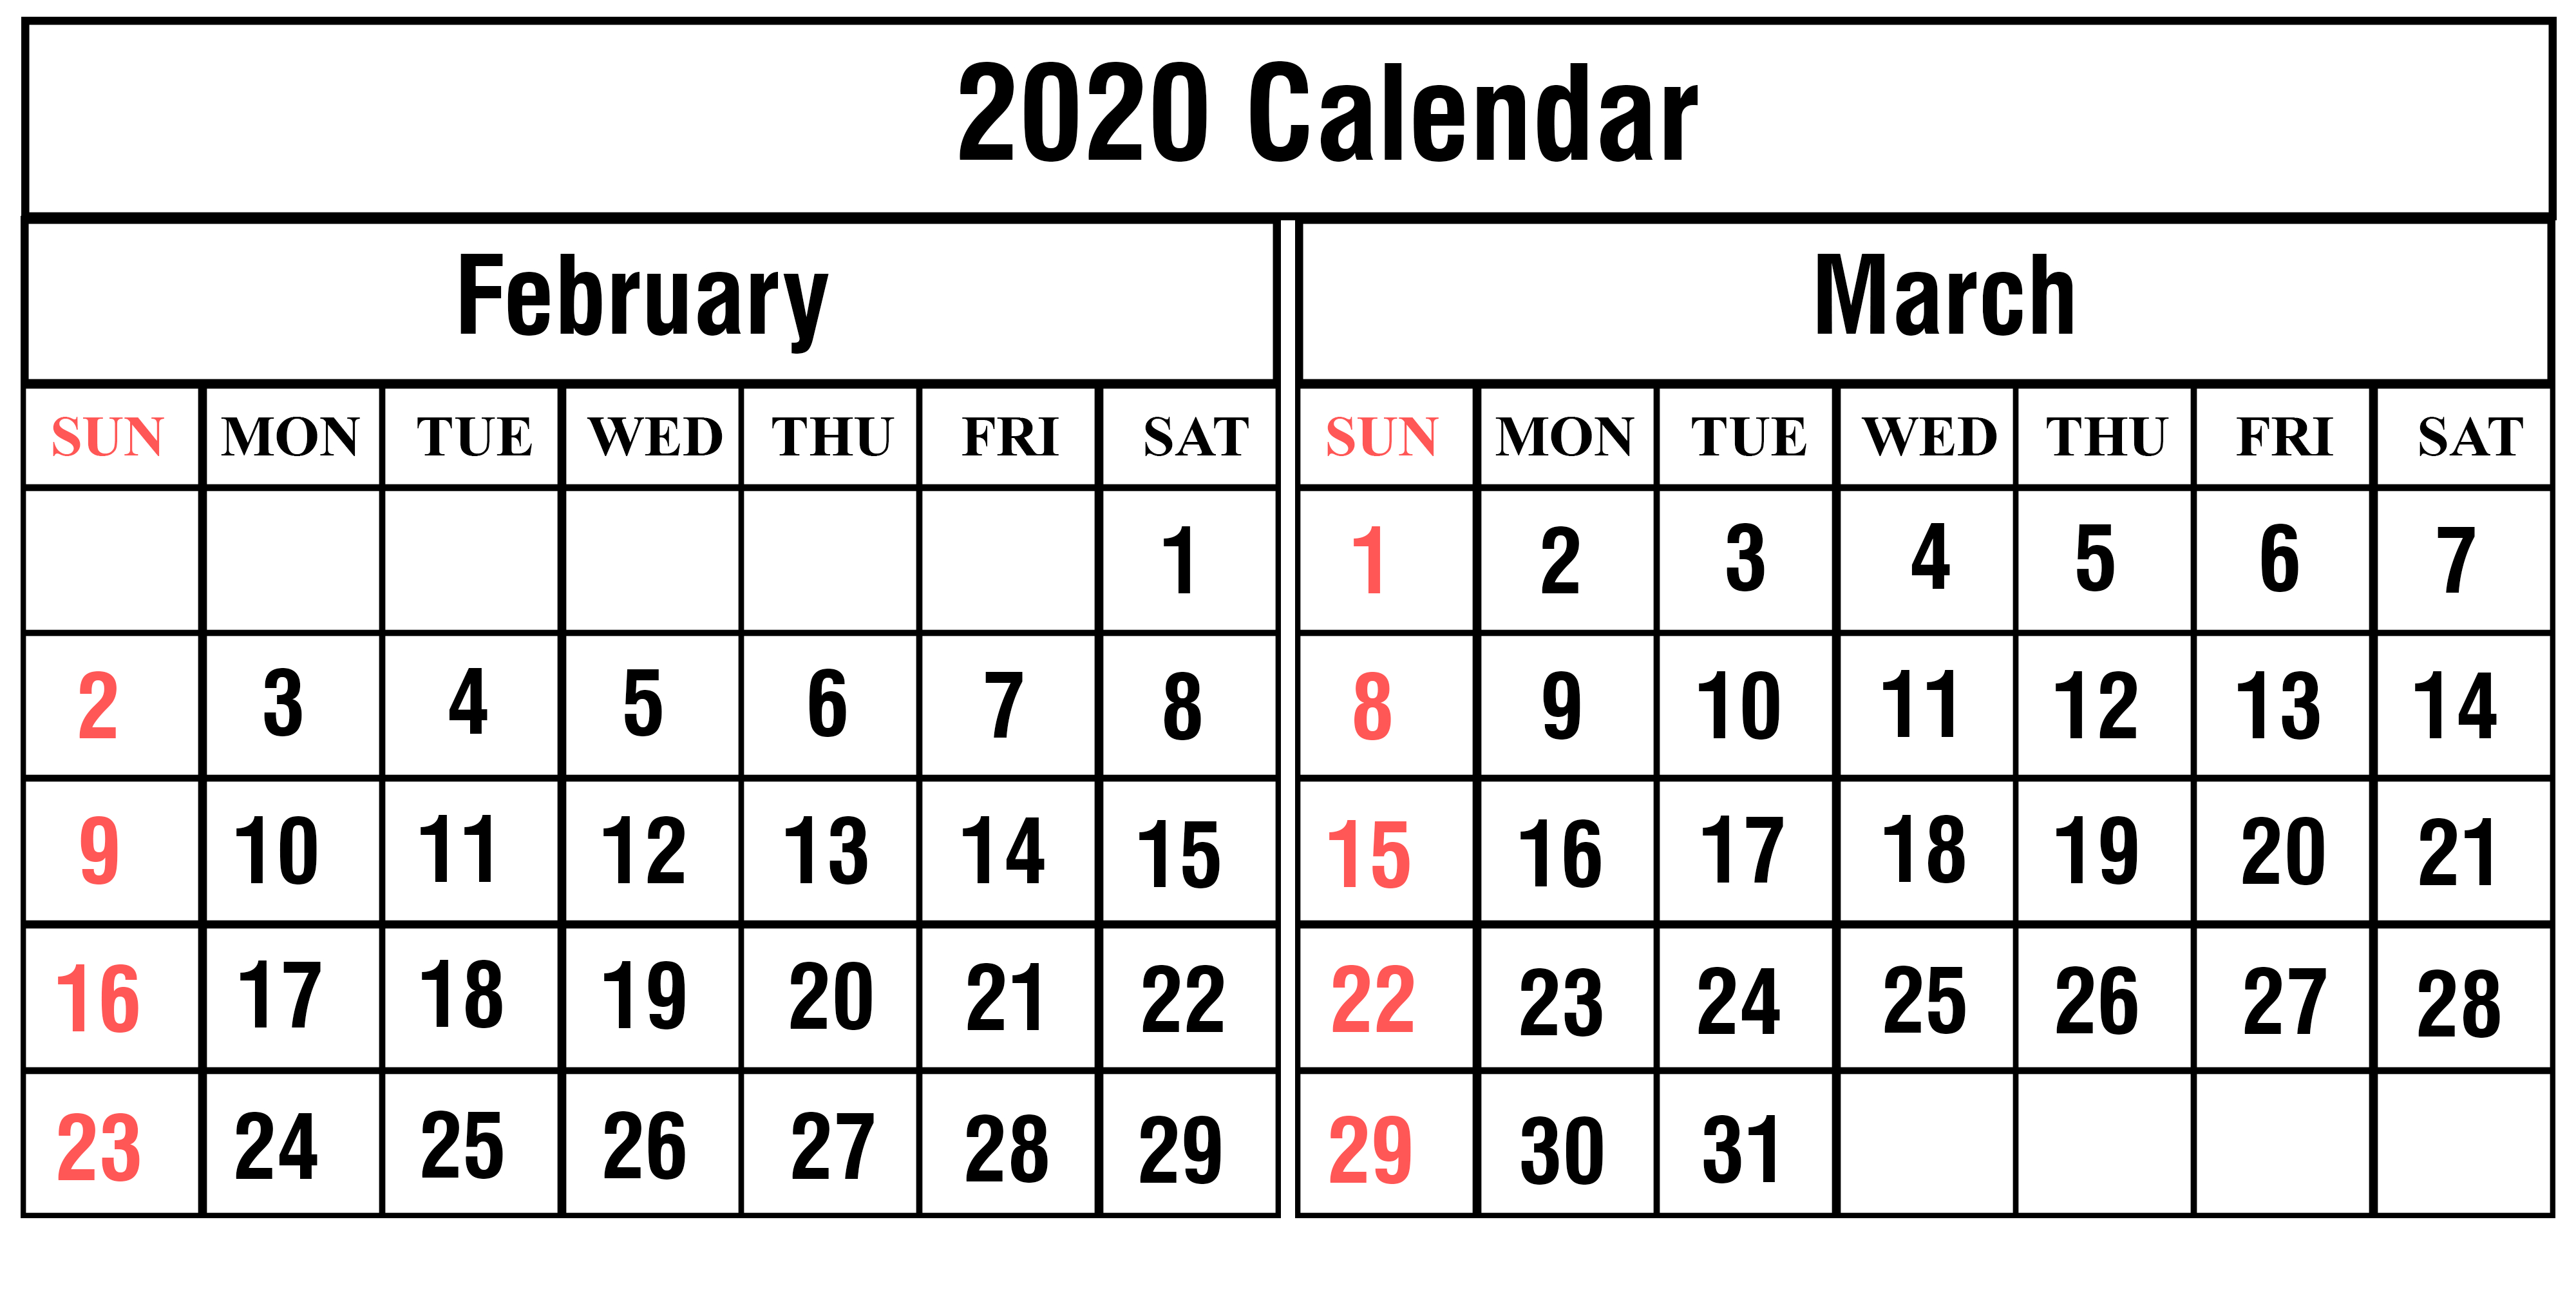 February March 2020 Calendar Quotes Of The Day | Free intended for 2020 Calendar February And March